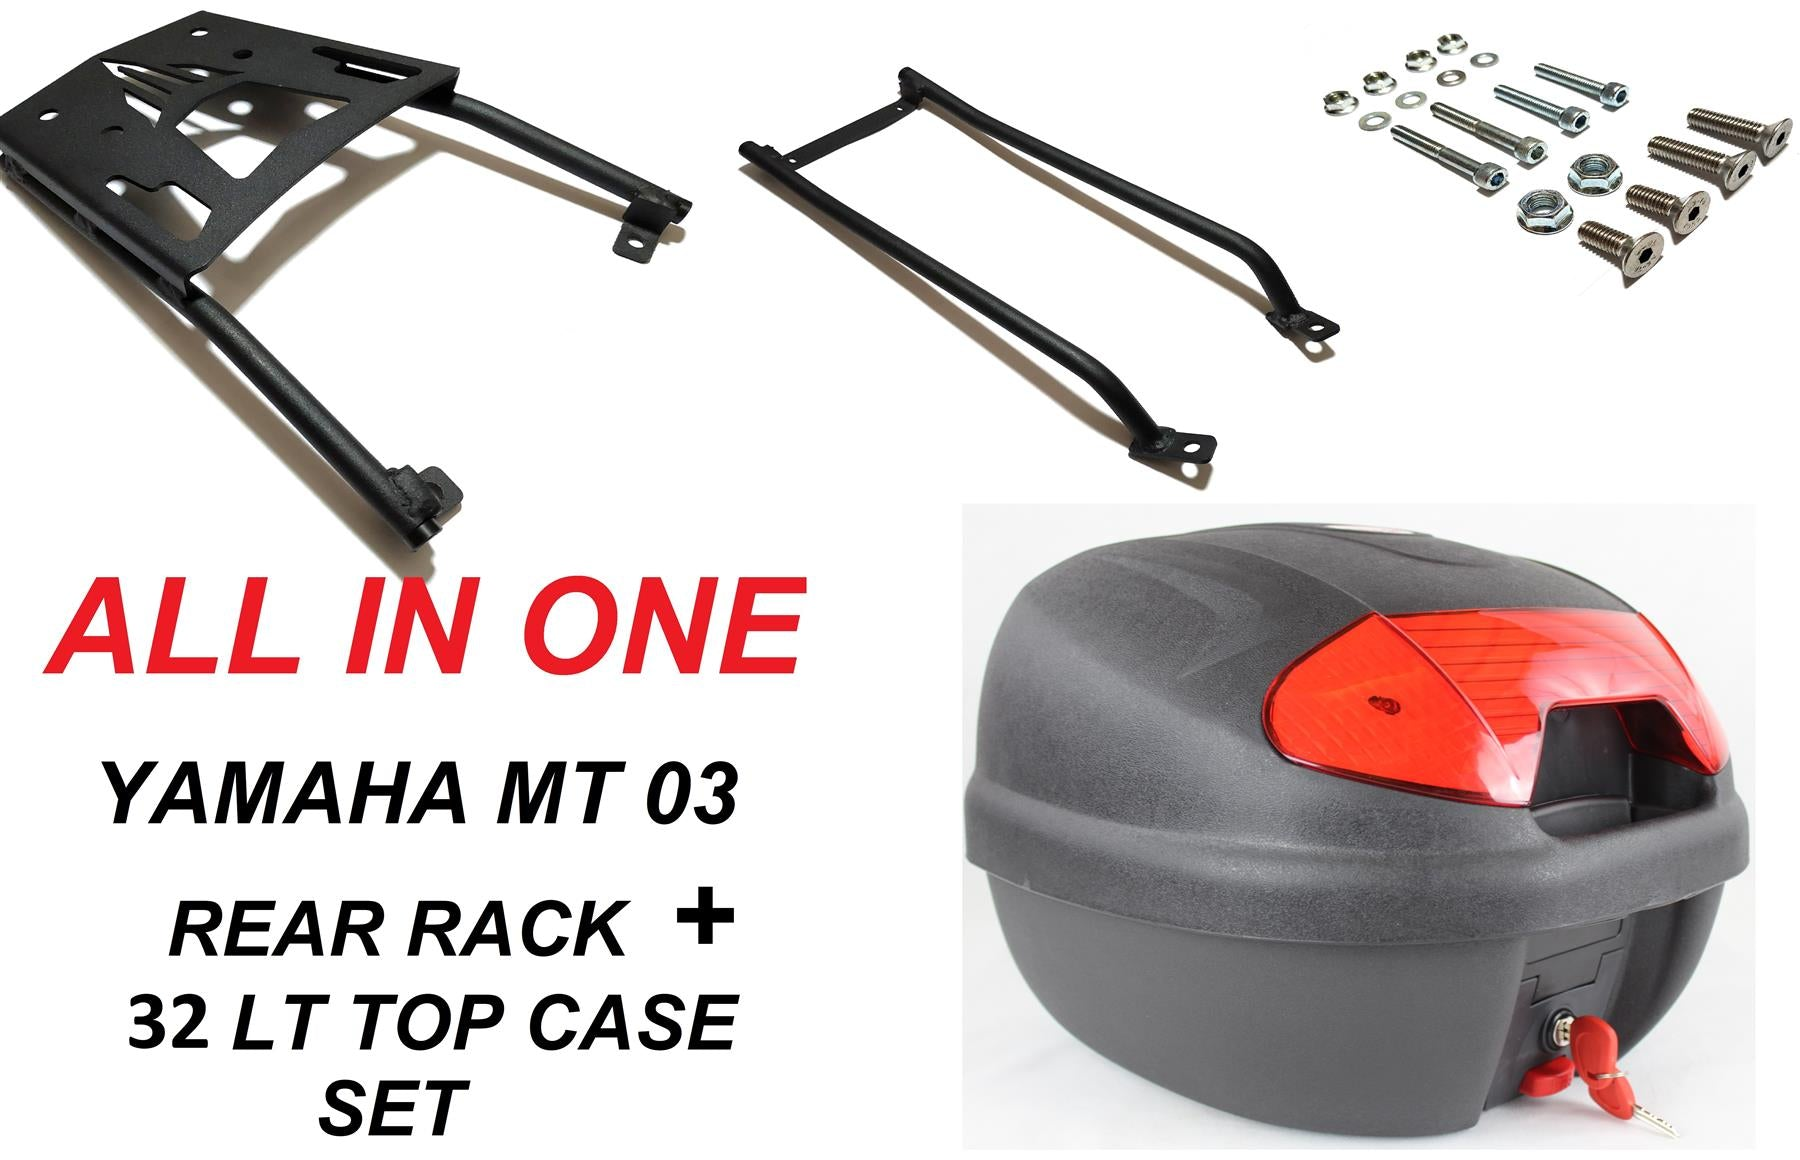 Yamaha MT03 luggage rack + 32 LT top case set 16-19 ALL IN ONE.